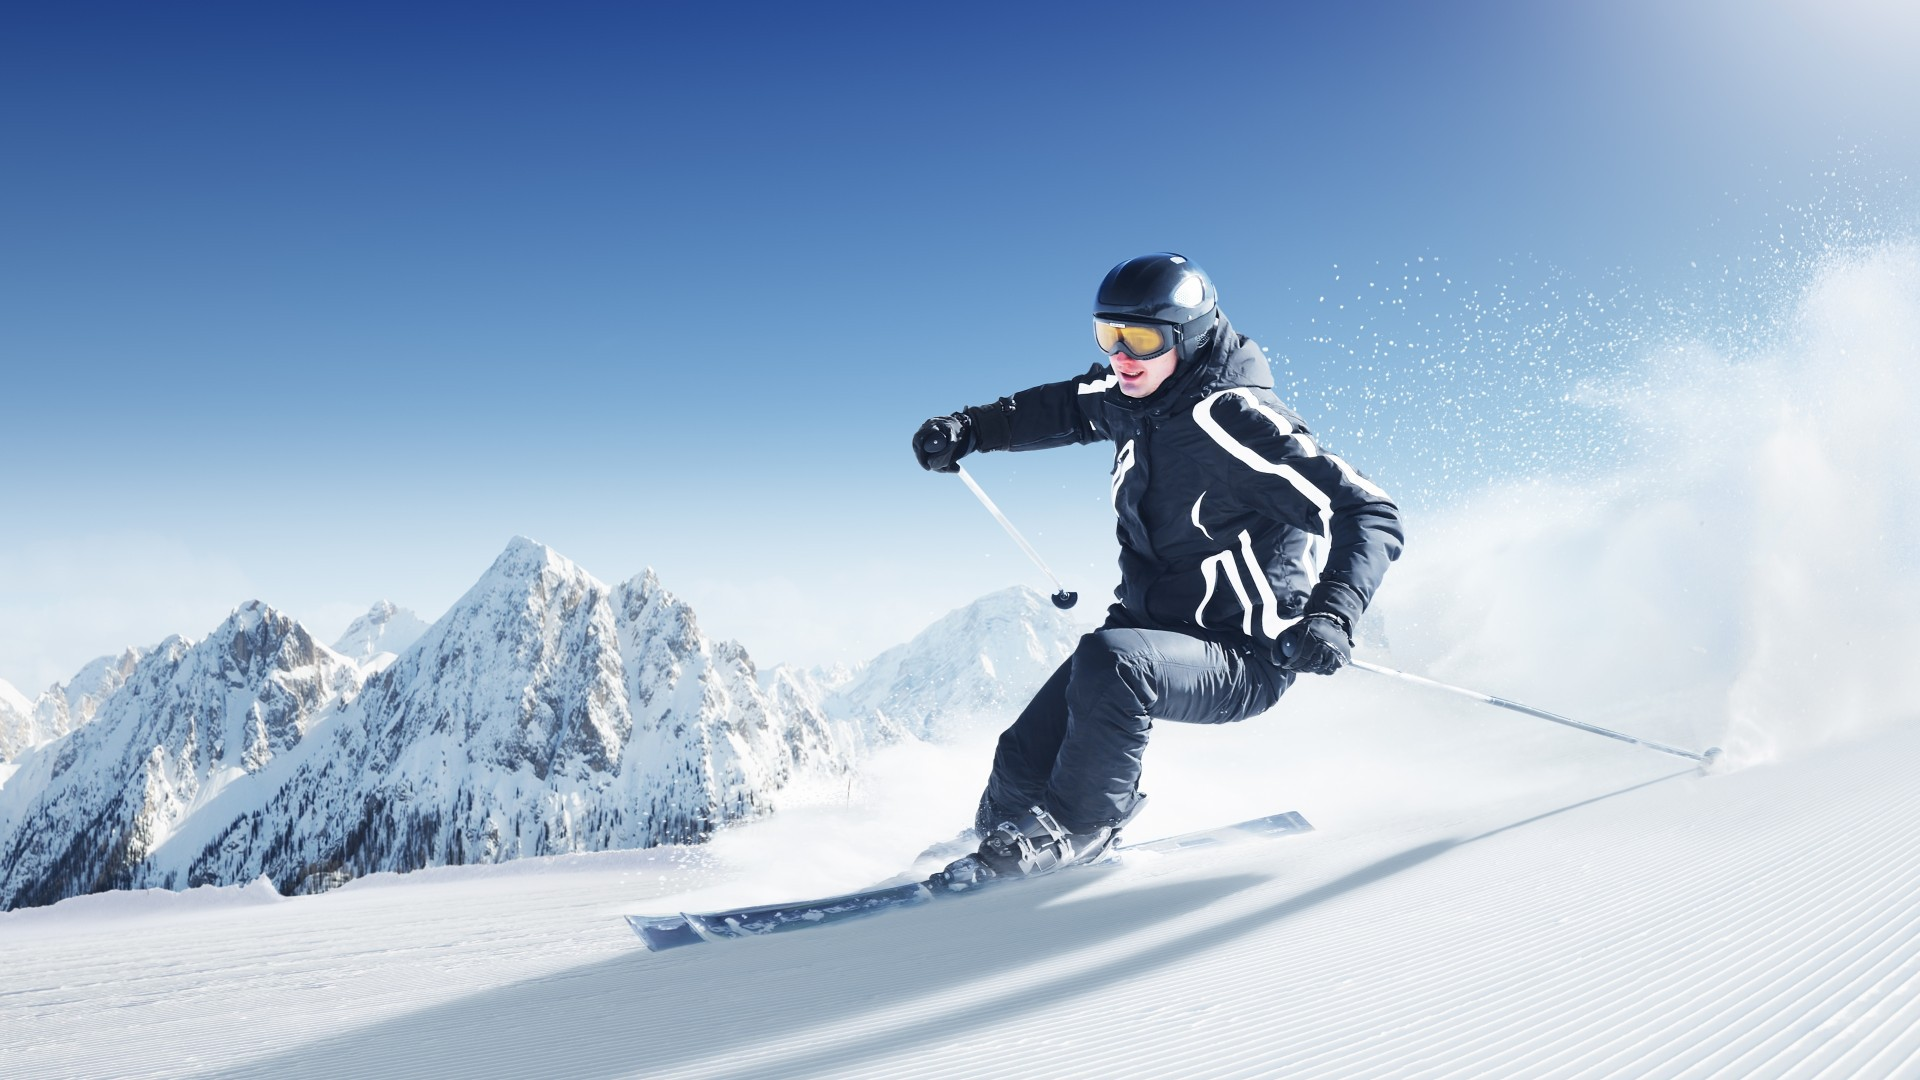 32211 download wallpaper Sports, People, Mountains, Snow screensavers and pictures for free